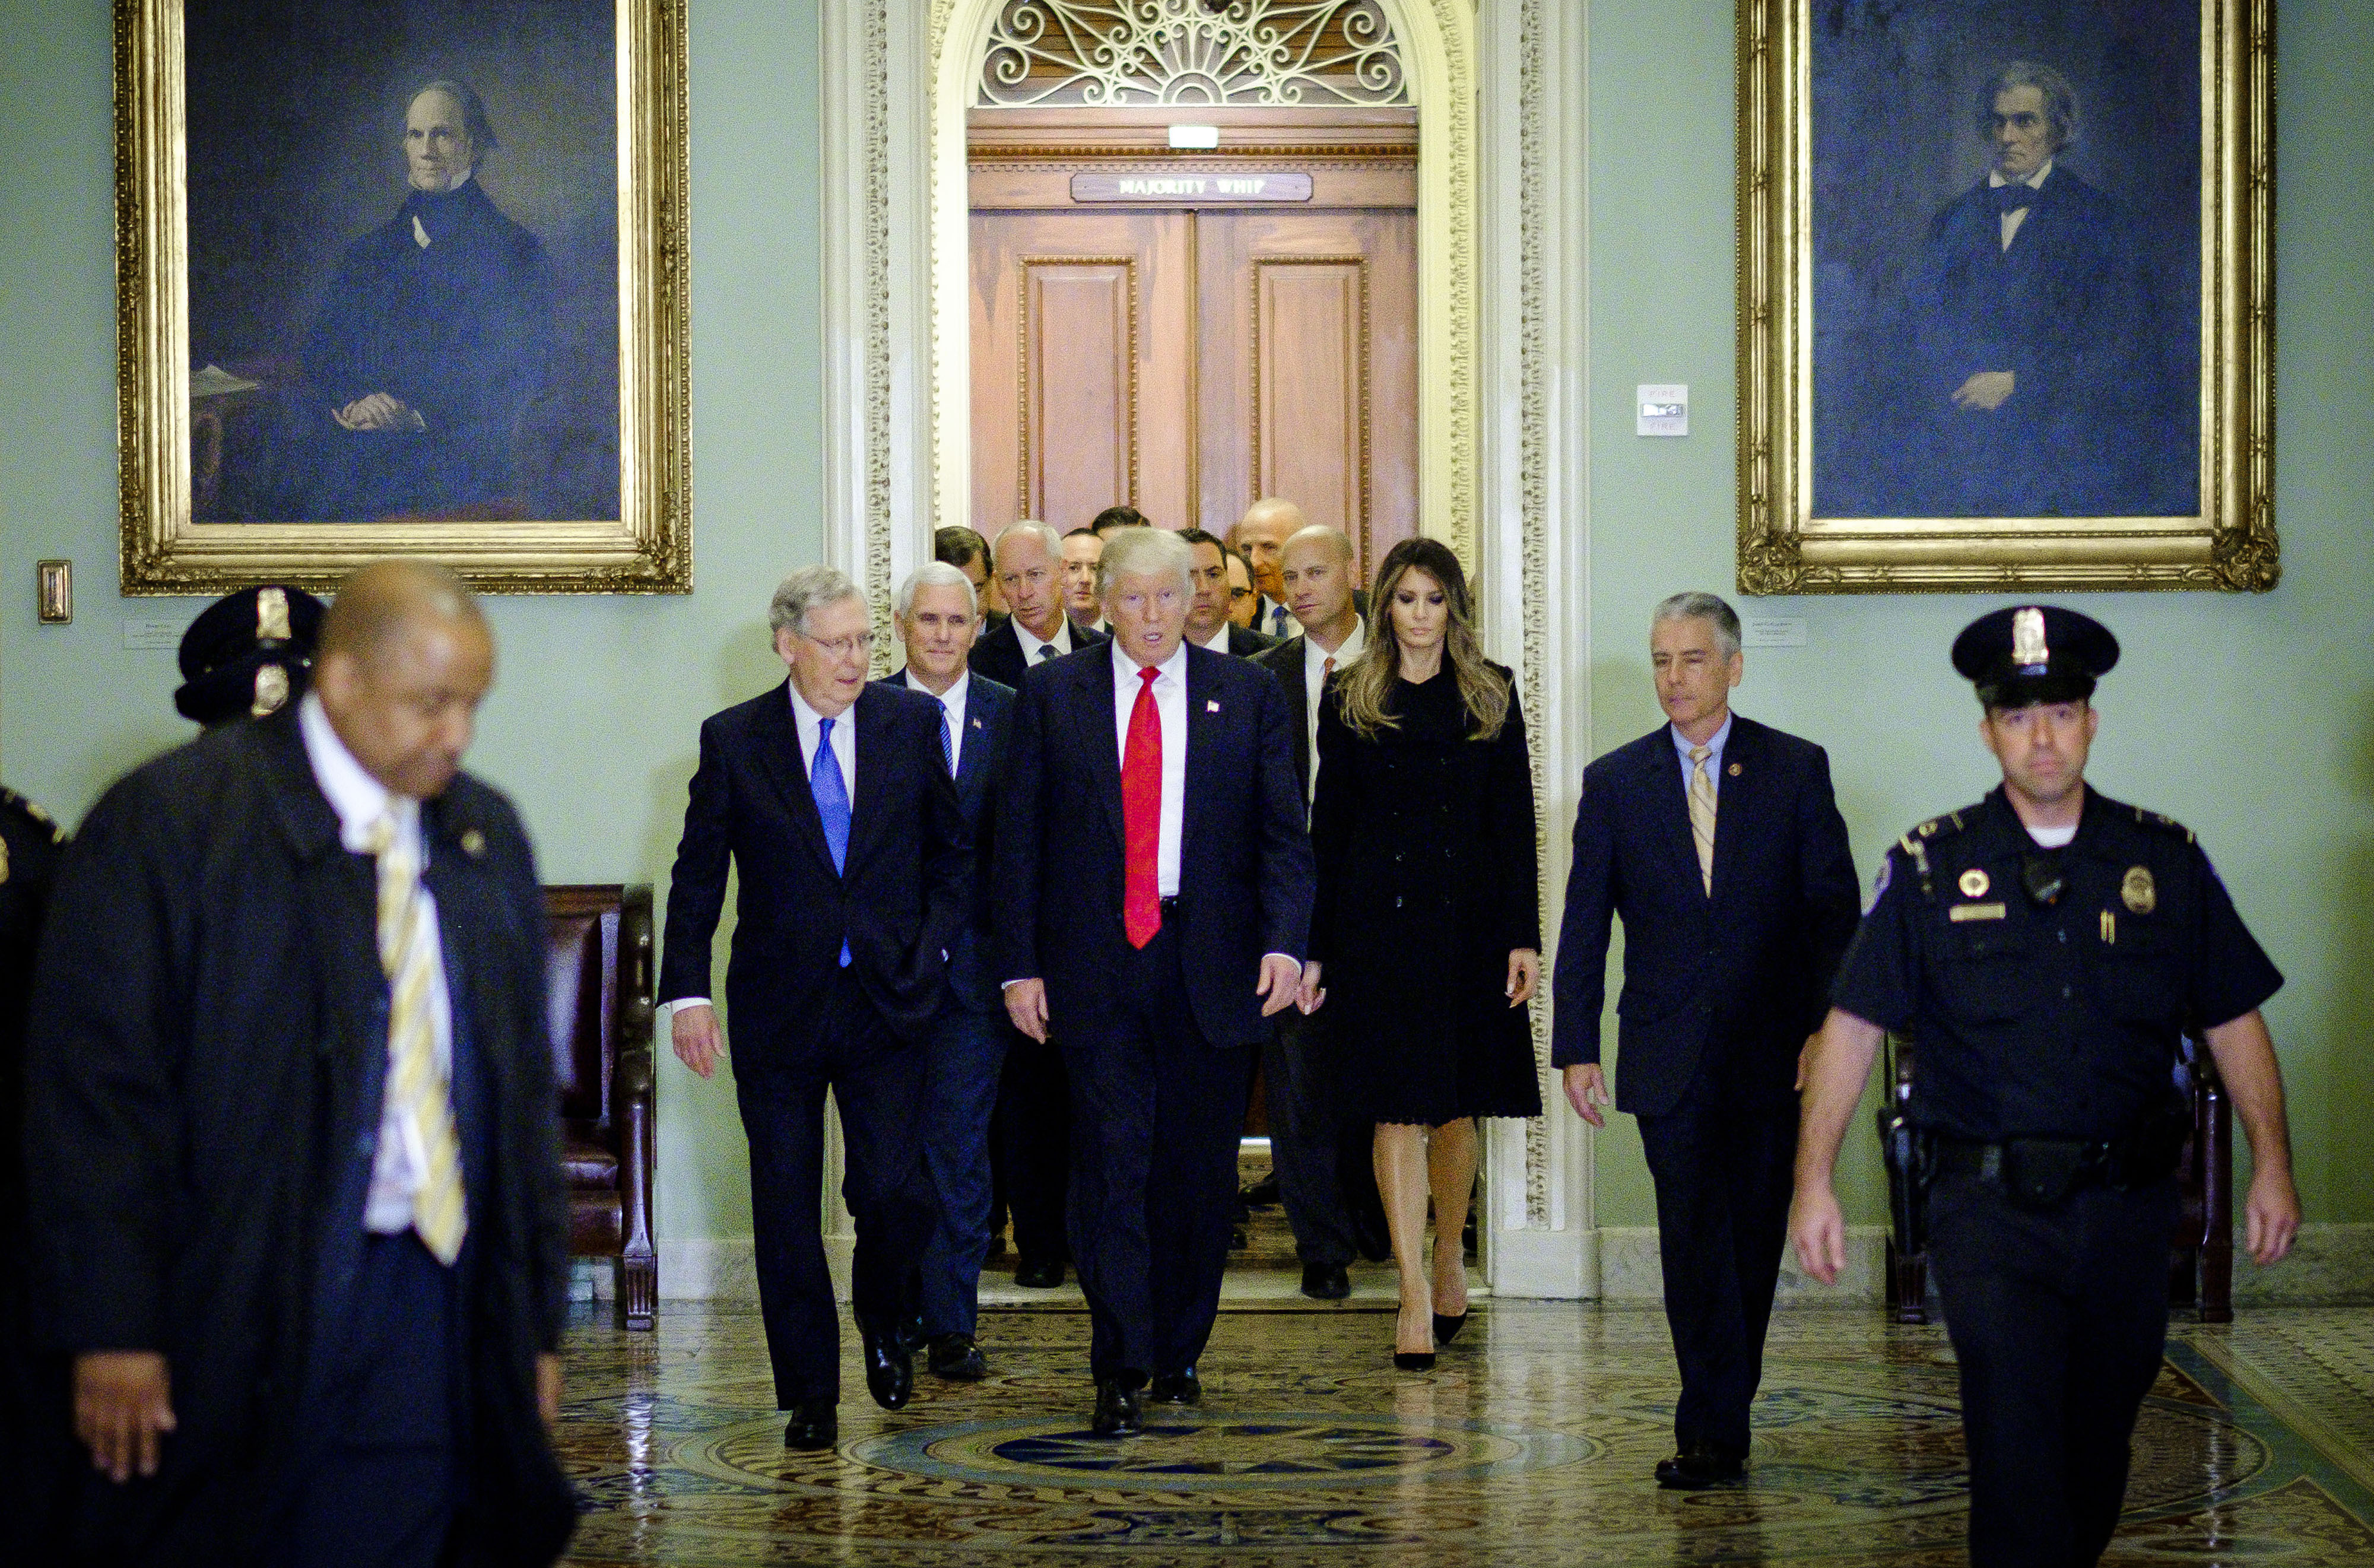 Donald Trump after a meeting at the U.S. Capitol on Nov. 10. (Bloomberg photo by Pete Marovich)